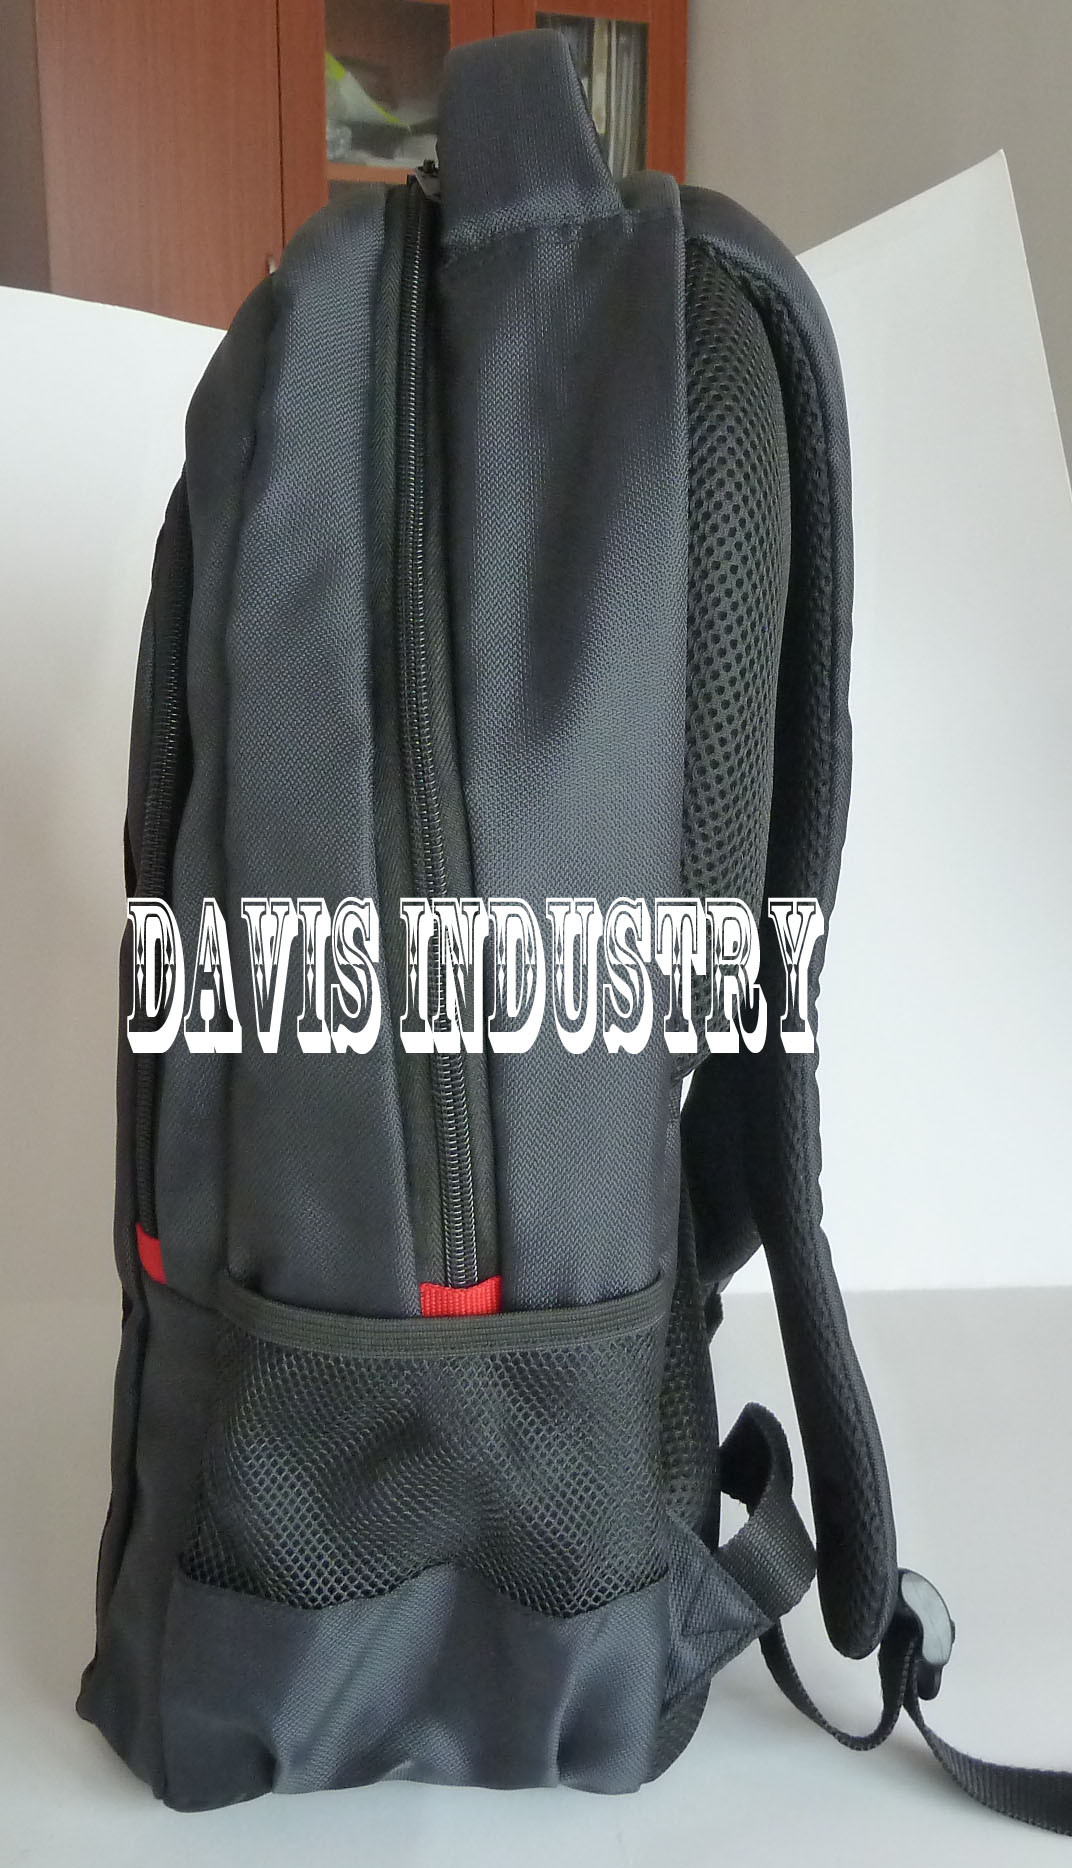 Functional Business Travelling Backpack with Good Price